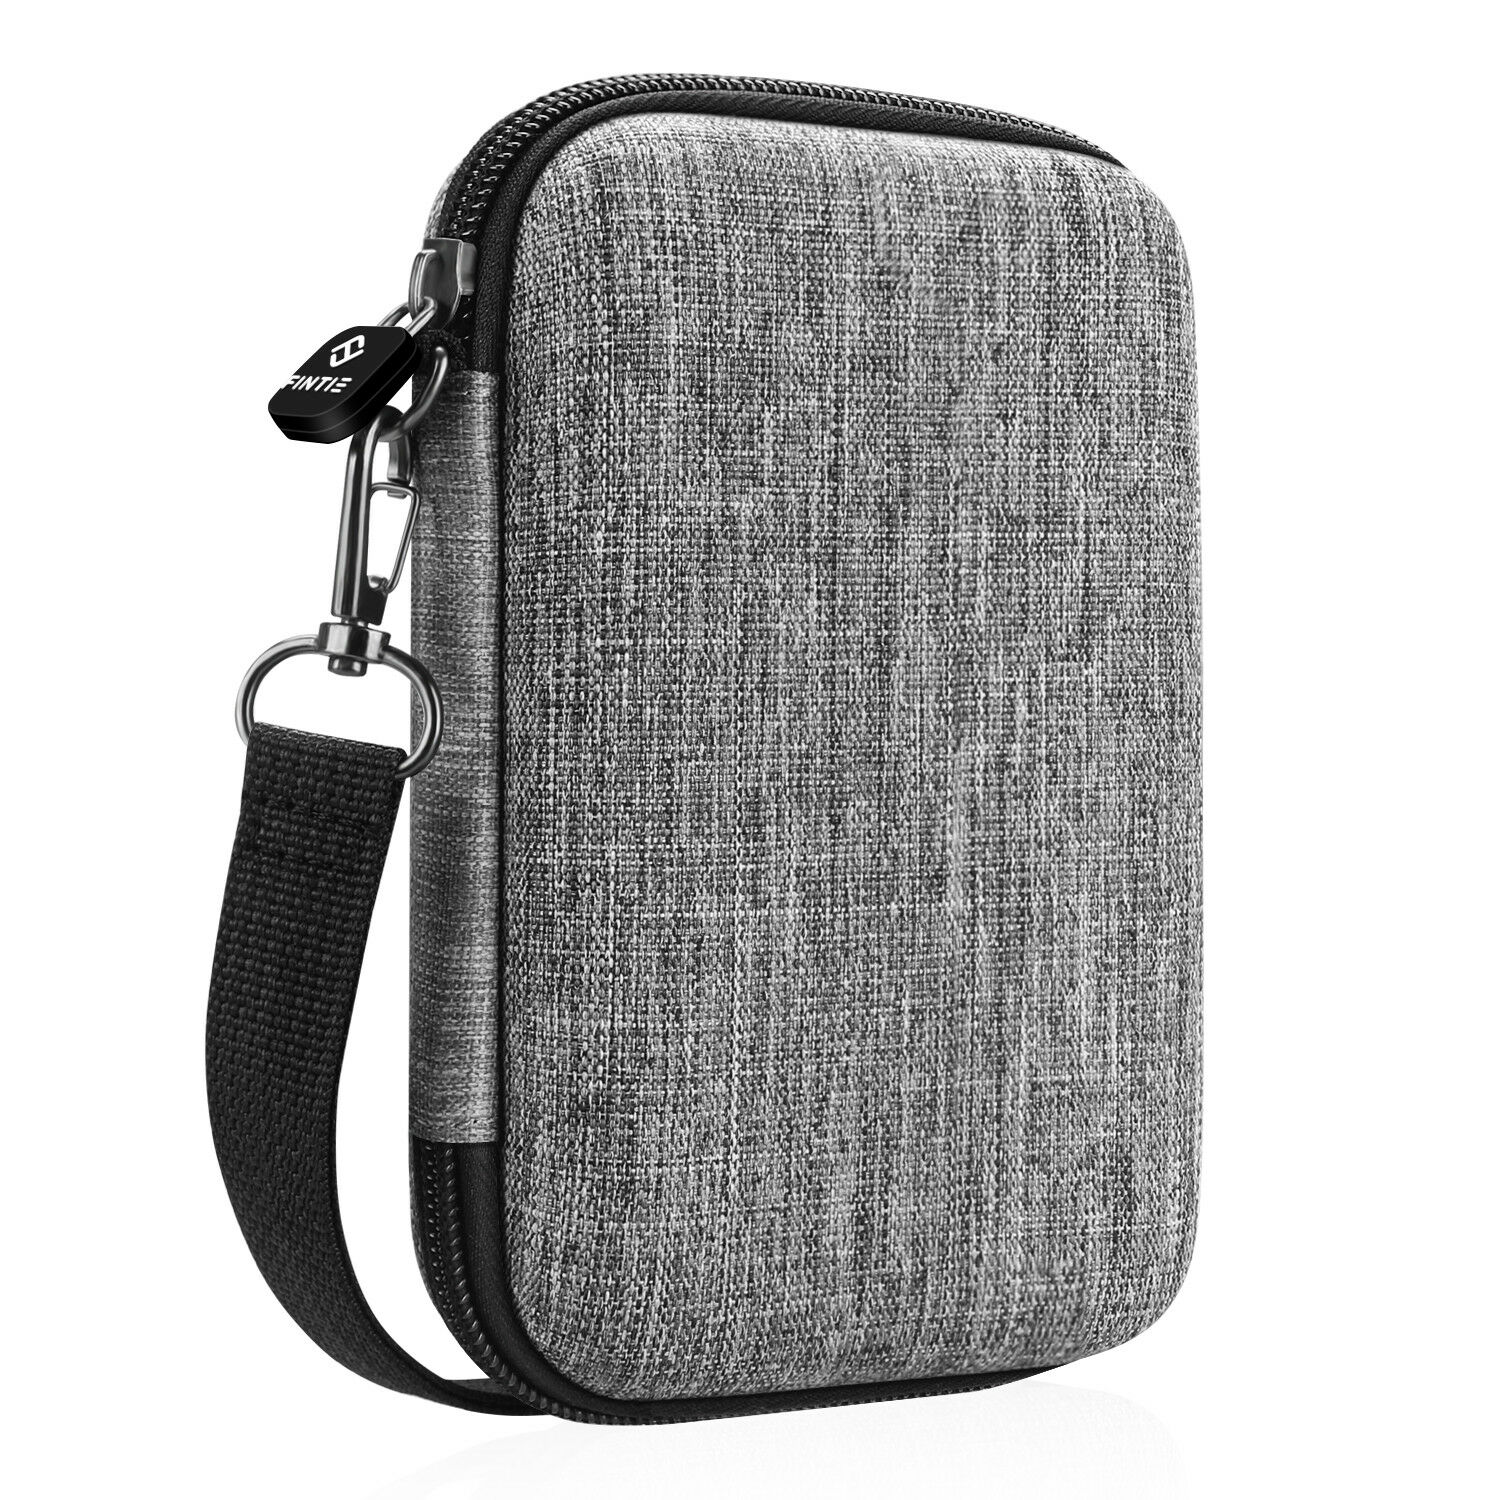 9be5bdfa99e8 Details about Protective Case for HP Sprocket Plus Photo Printer Hard  Shockproof Carrying Bag